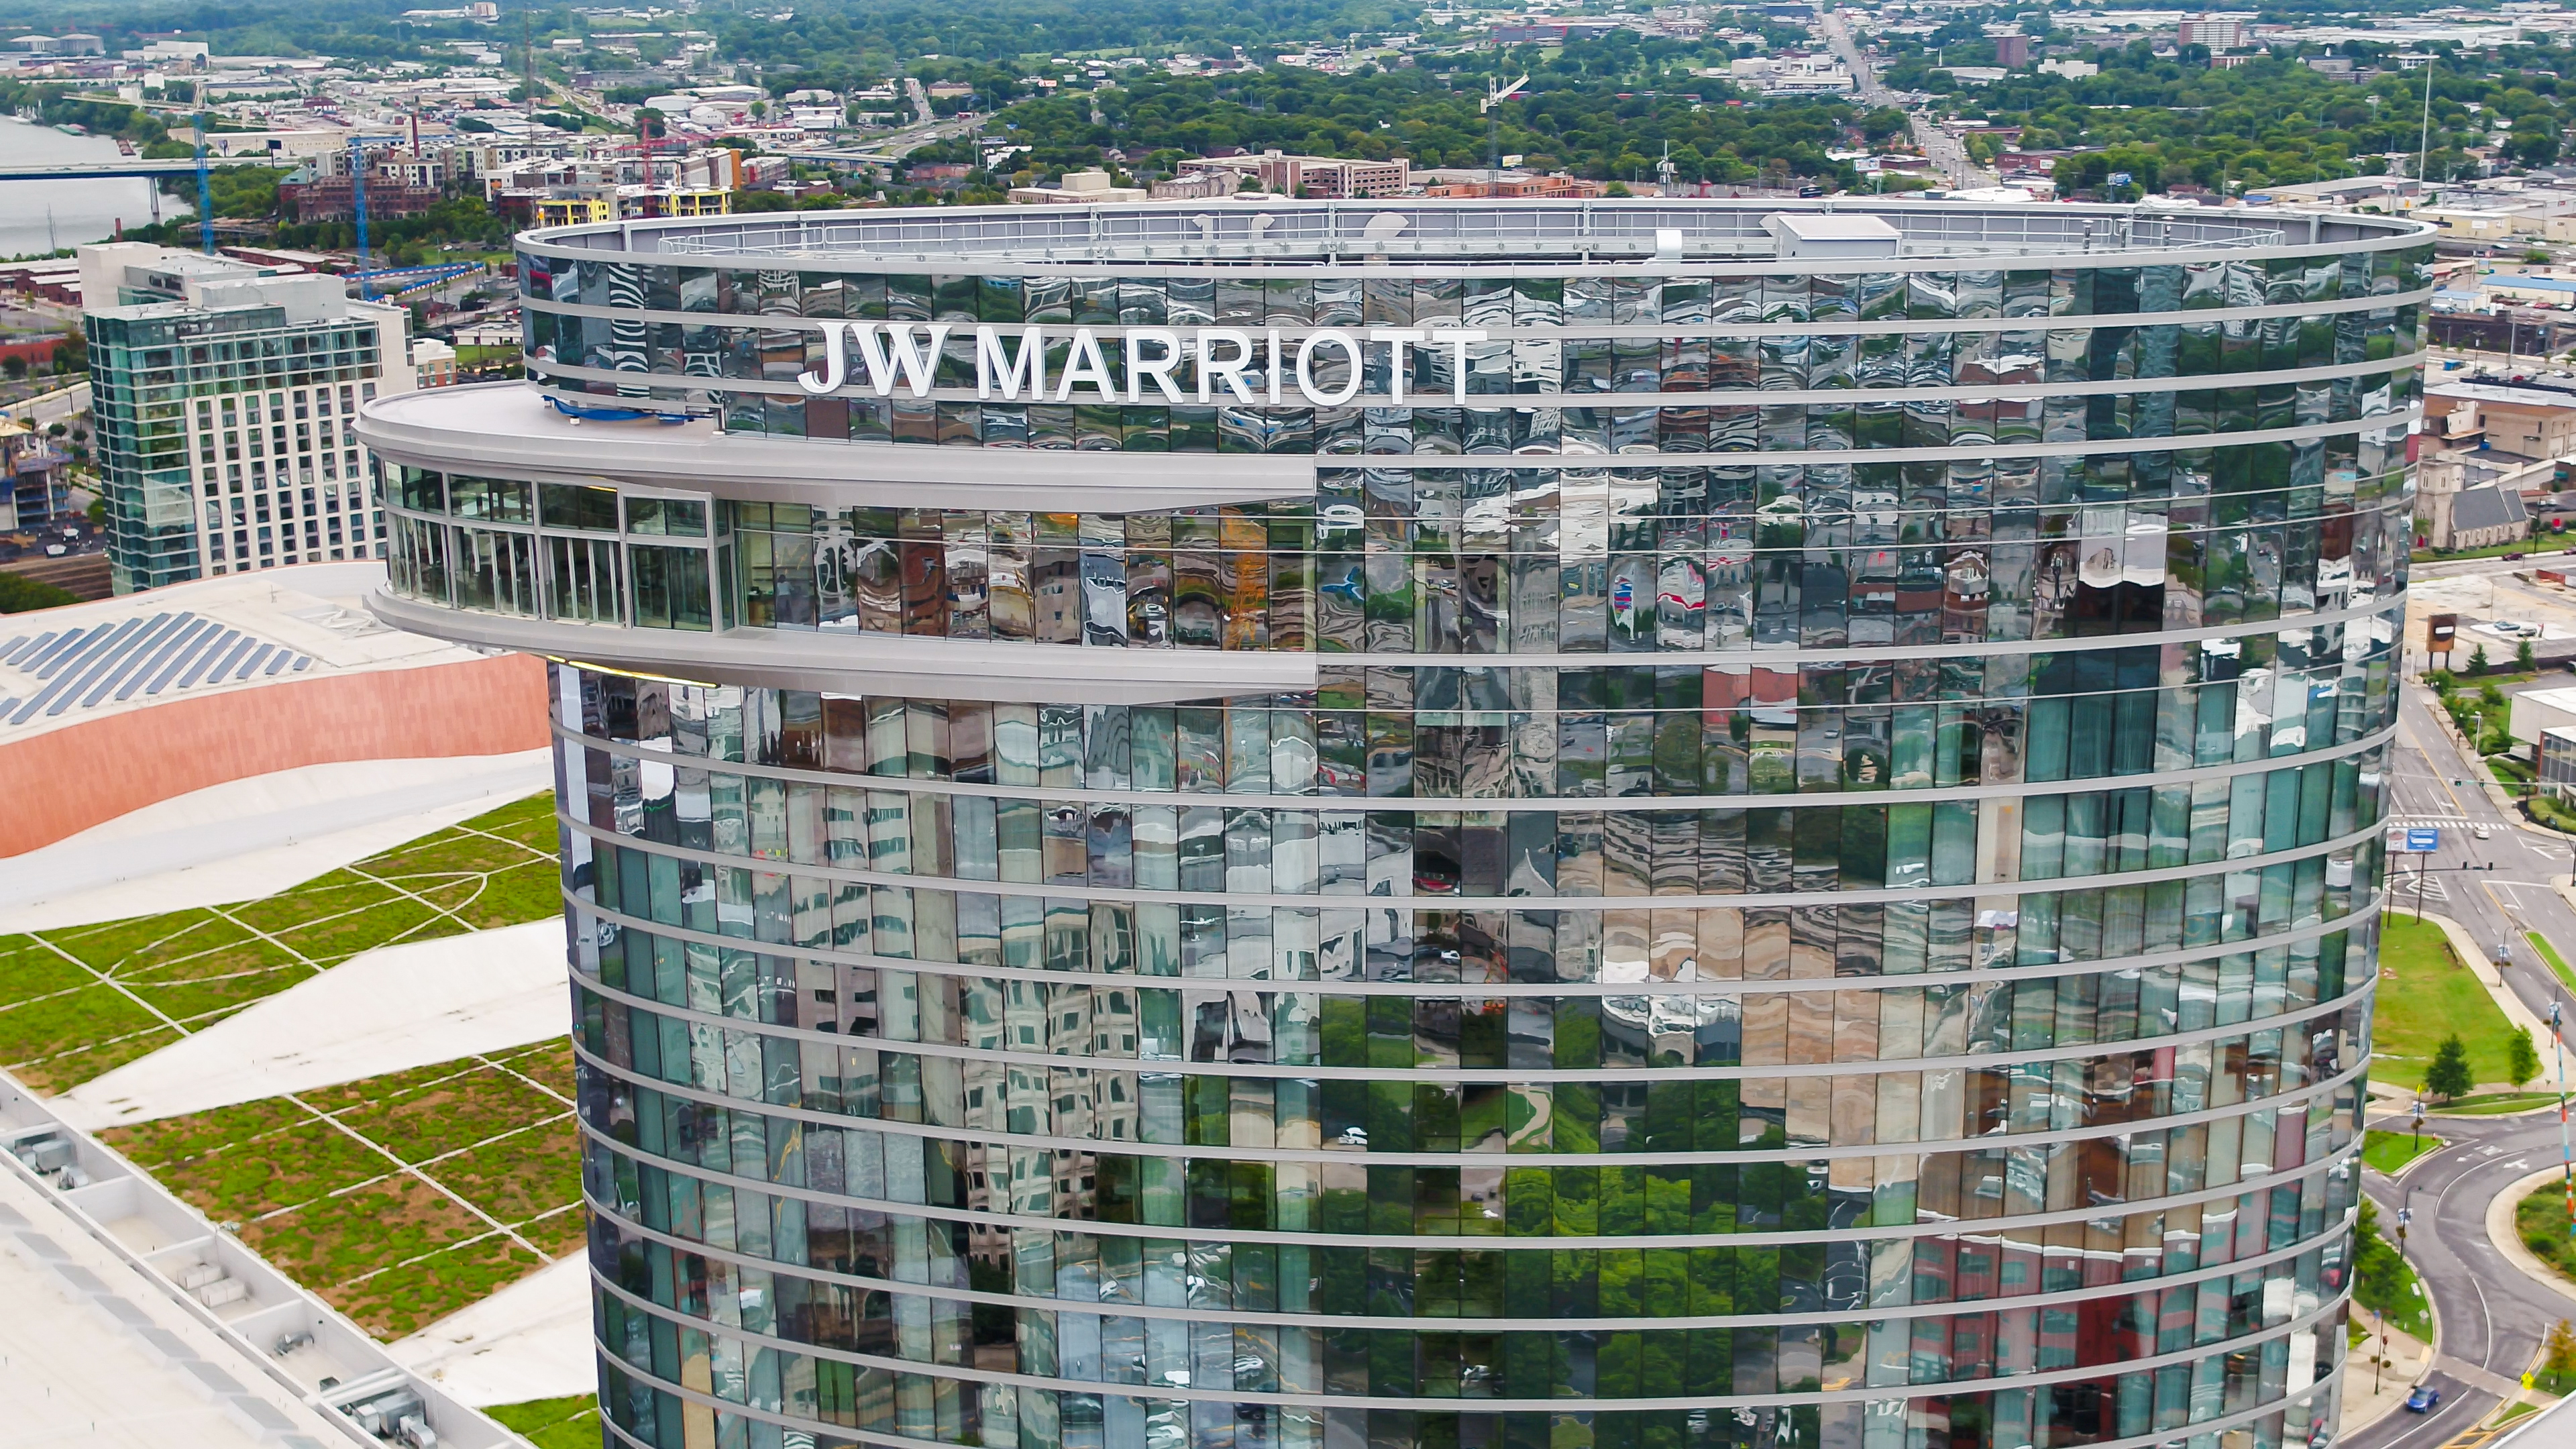 JW Marriott Nashville